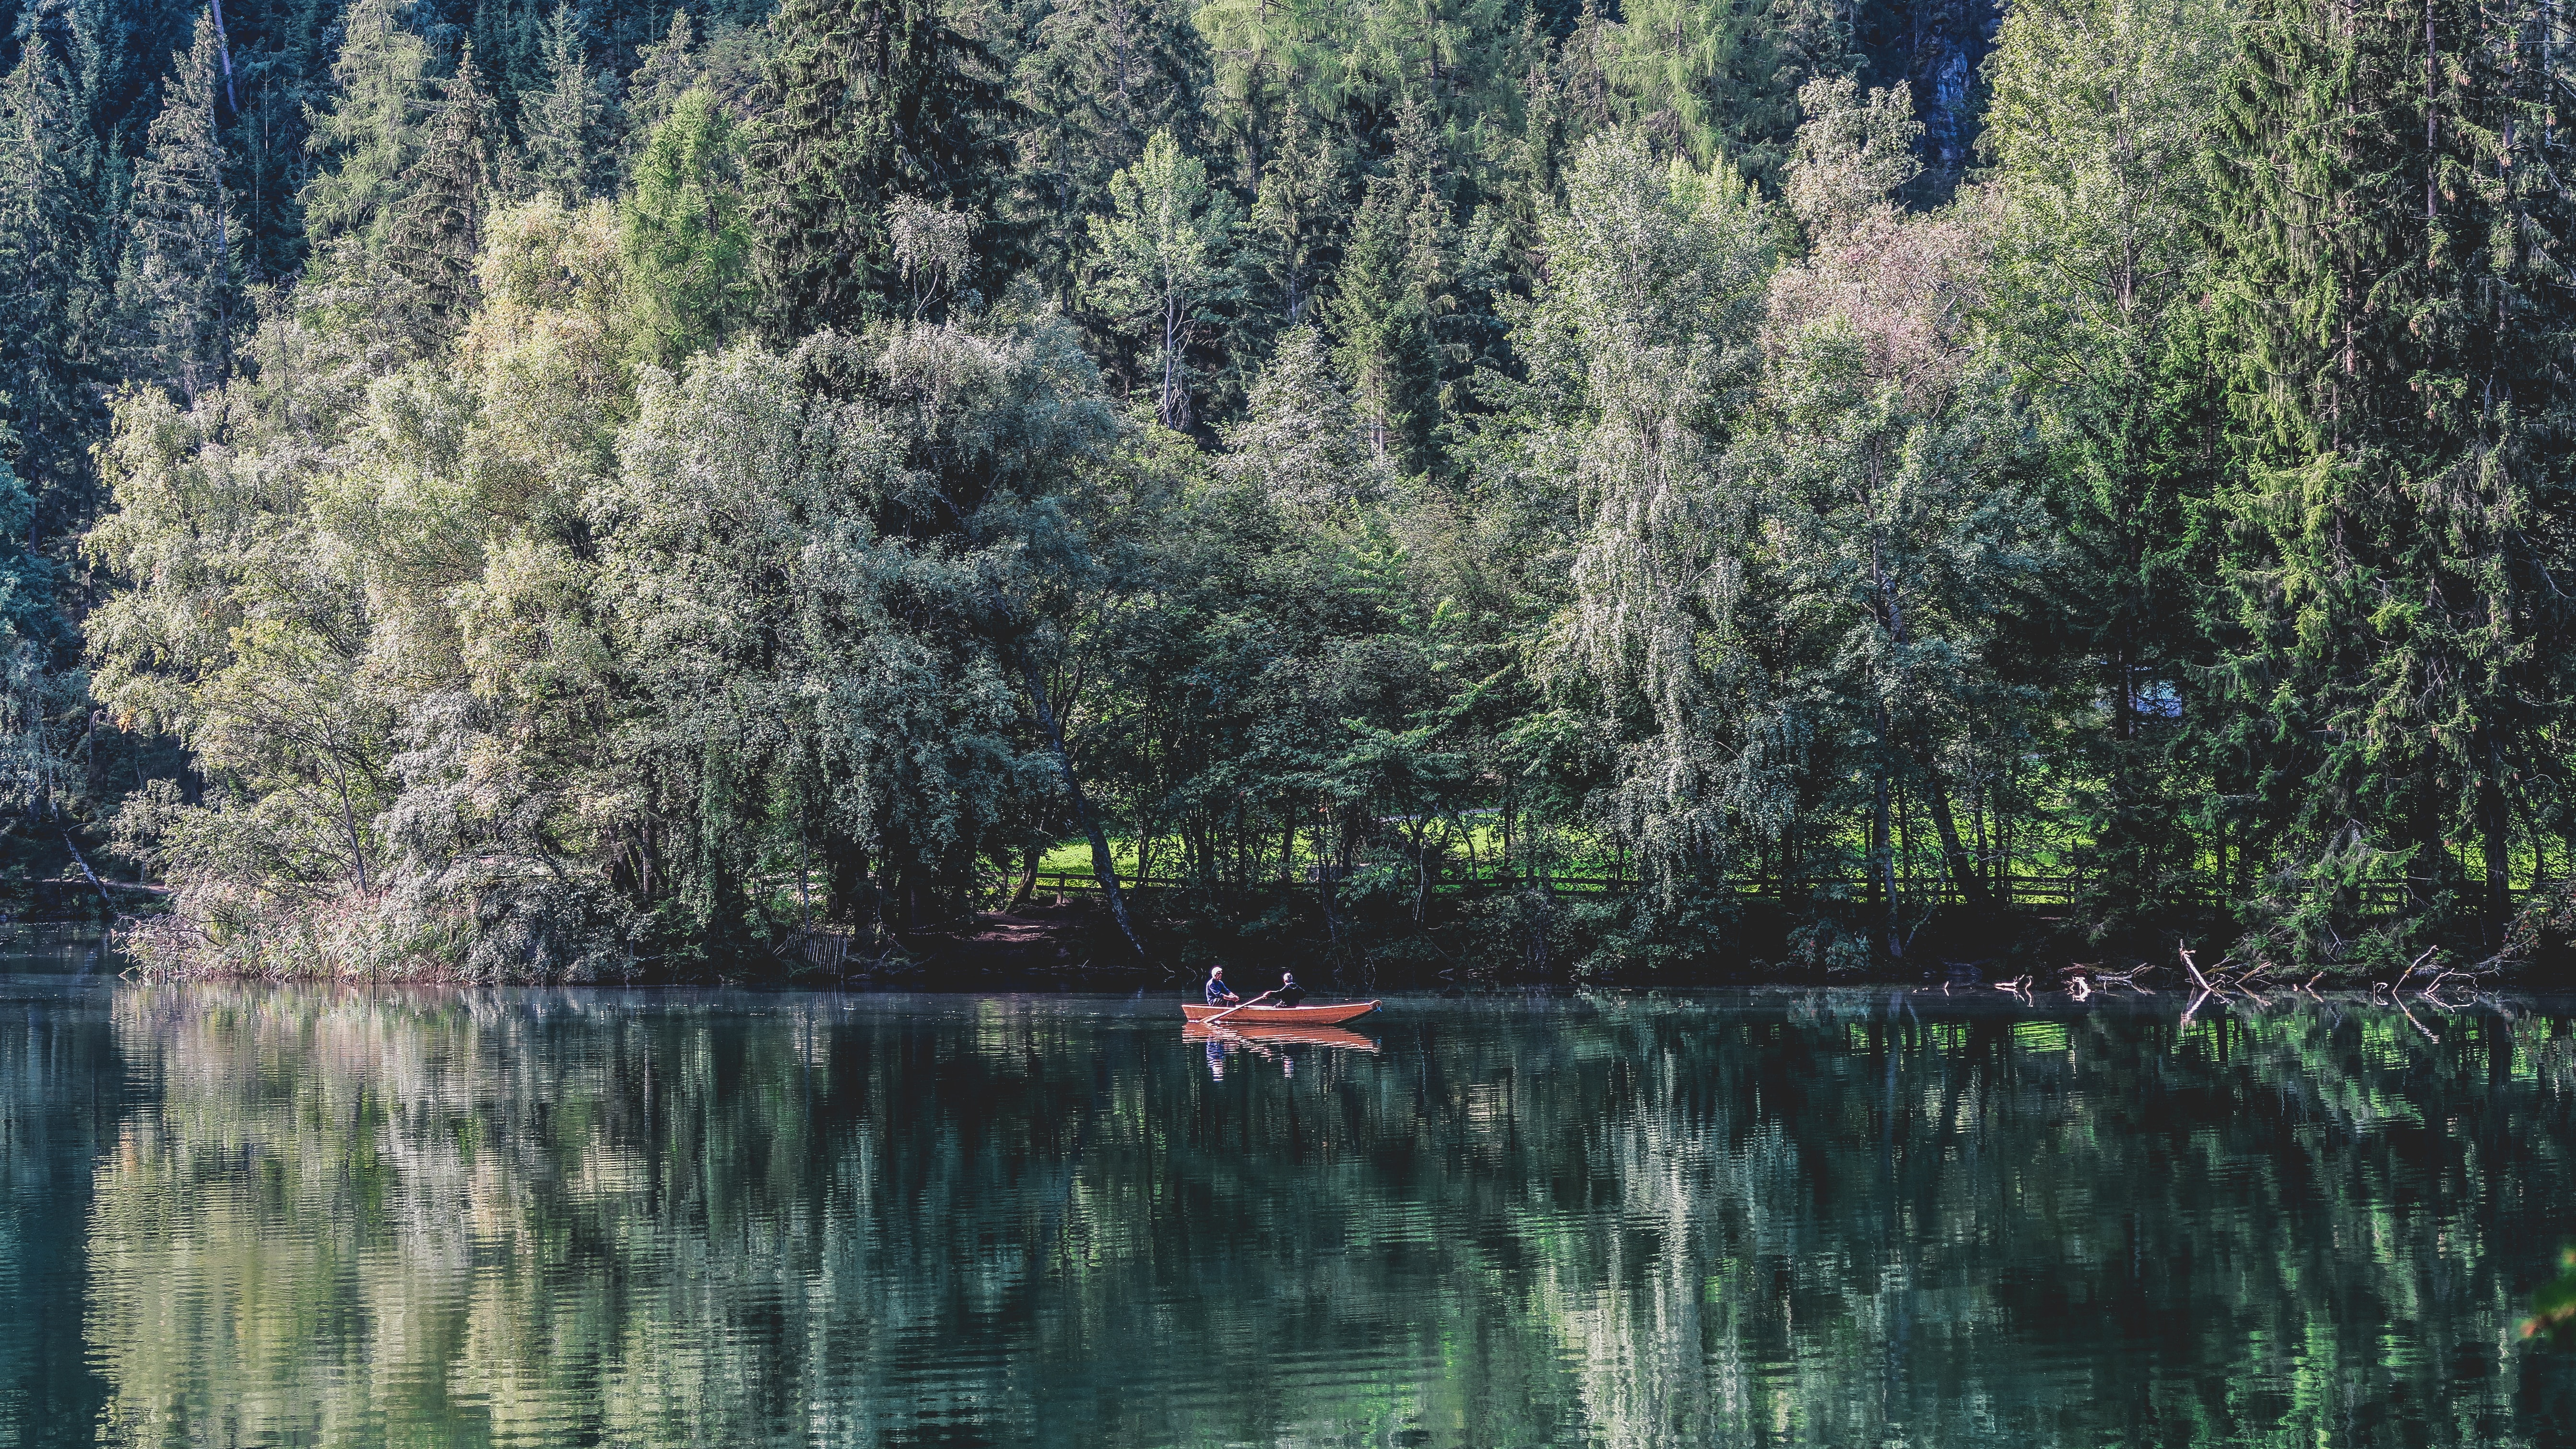 two people on red boat on water near trees during daytime